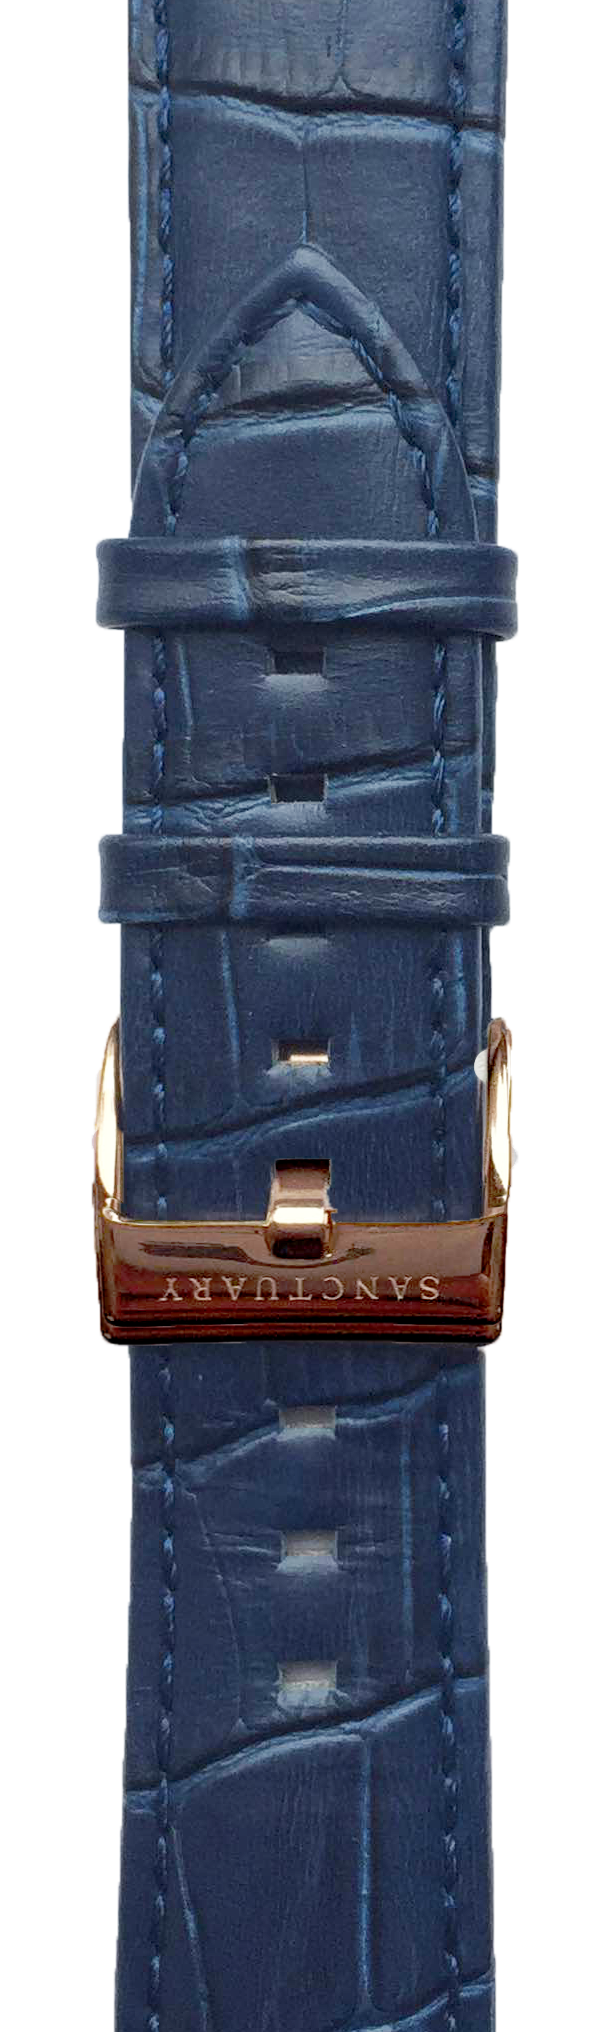 Hermes Royal Blue Leather Strap - Sanctuary Luxury Watches